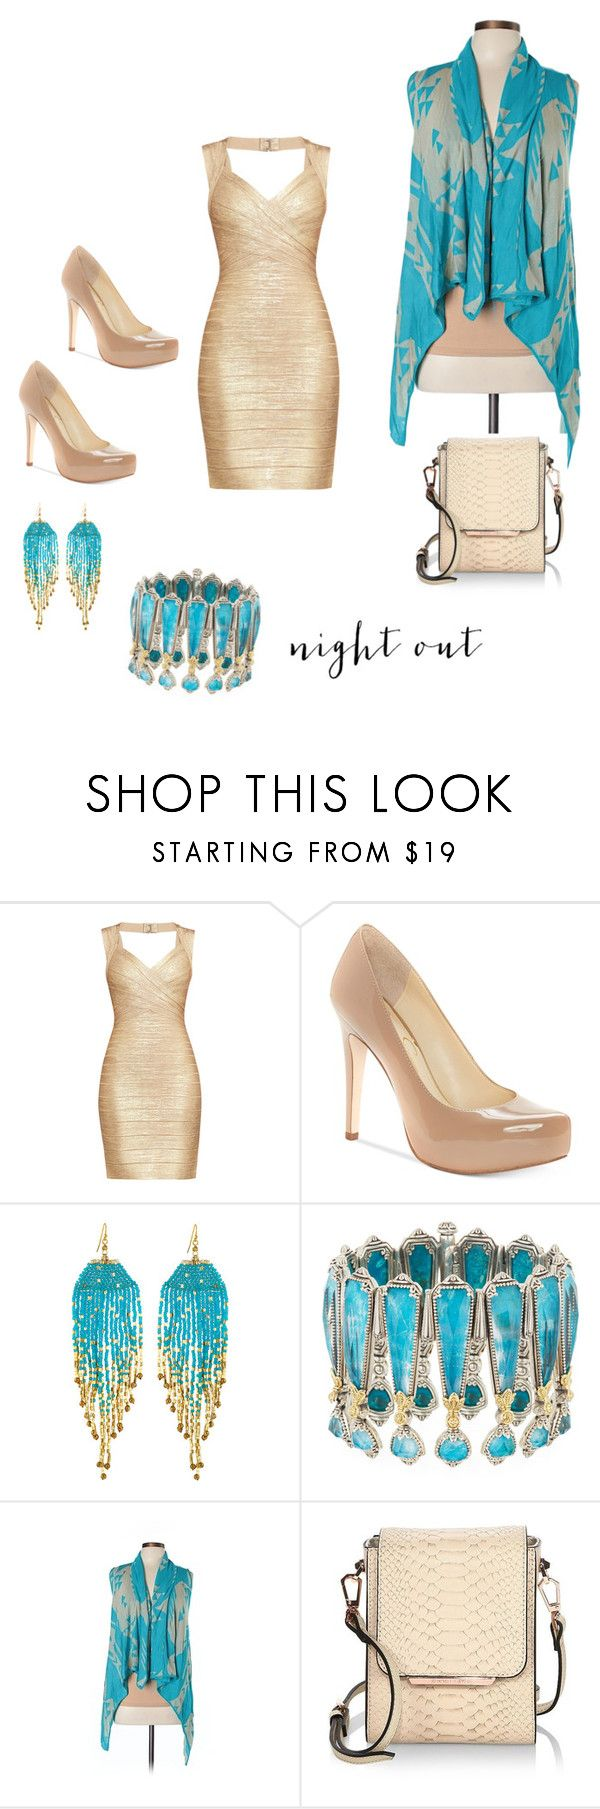 """night out"" by spoiledcrybaby420 ❤ liked on Polyvore featuring Hervé Léger, Jessica Simpson, NAKAMOL, Konstantino, Say What? and Kendall + Kylie"